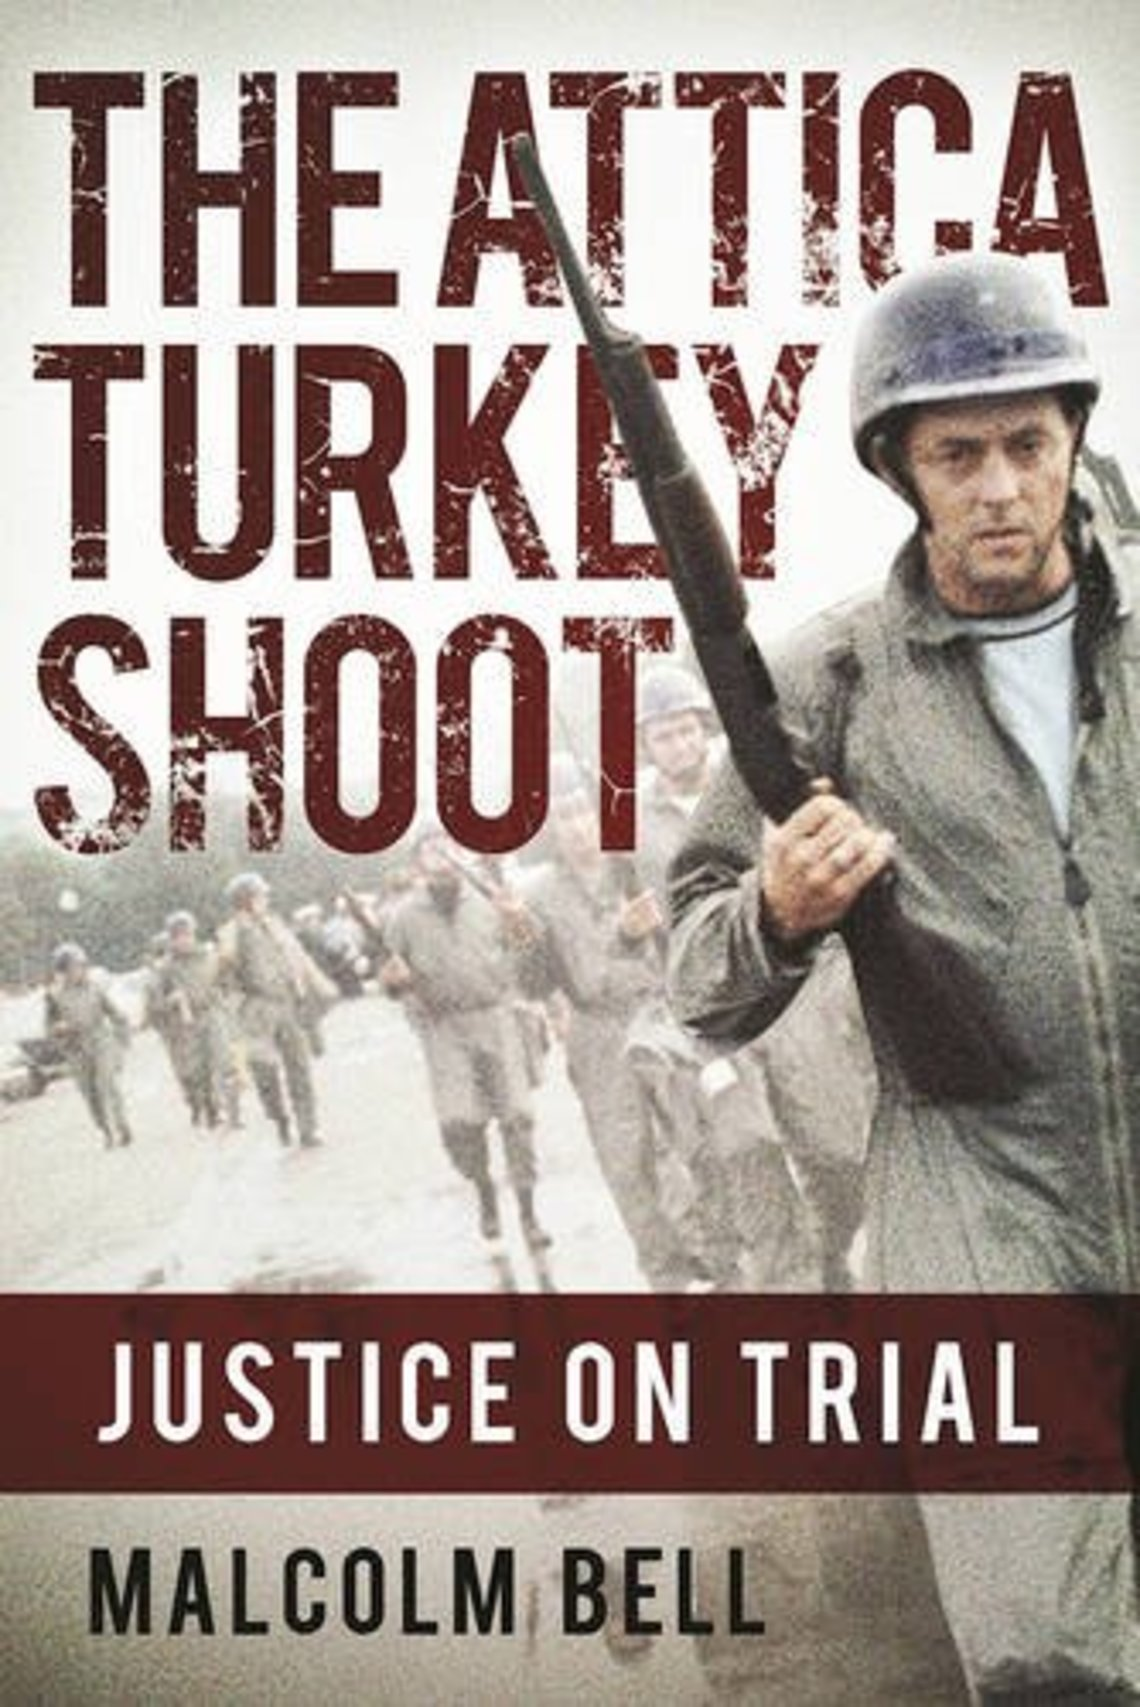 """""""The Turkey Shoot: Tracking the Attica Cover-up,"""" by Malcolm Bell, foreword by Tom Wicker, Grove Press 1985 (scheduled for re-release in March, 2017, with a new introduction and epilogue by the author as """"The Attica Turkey Shoot: Justice On Trial."""") (pictured)"""